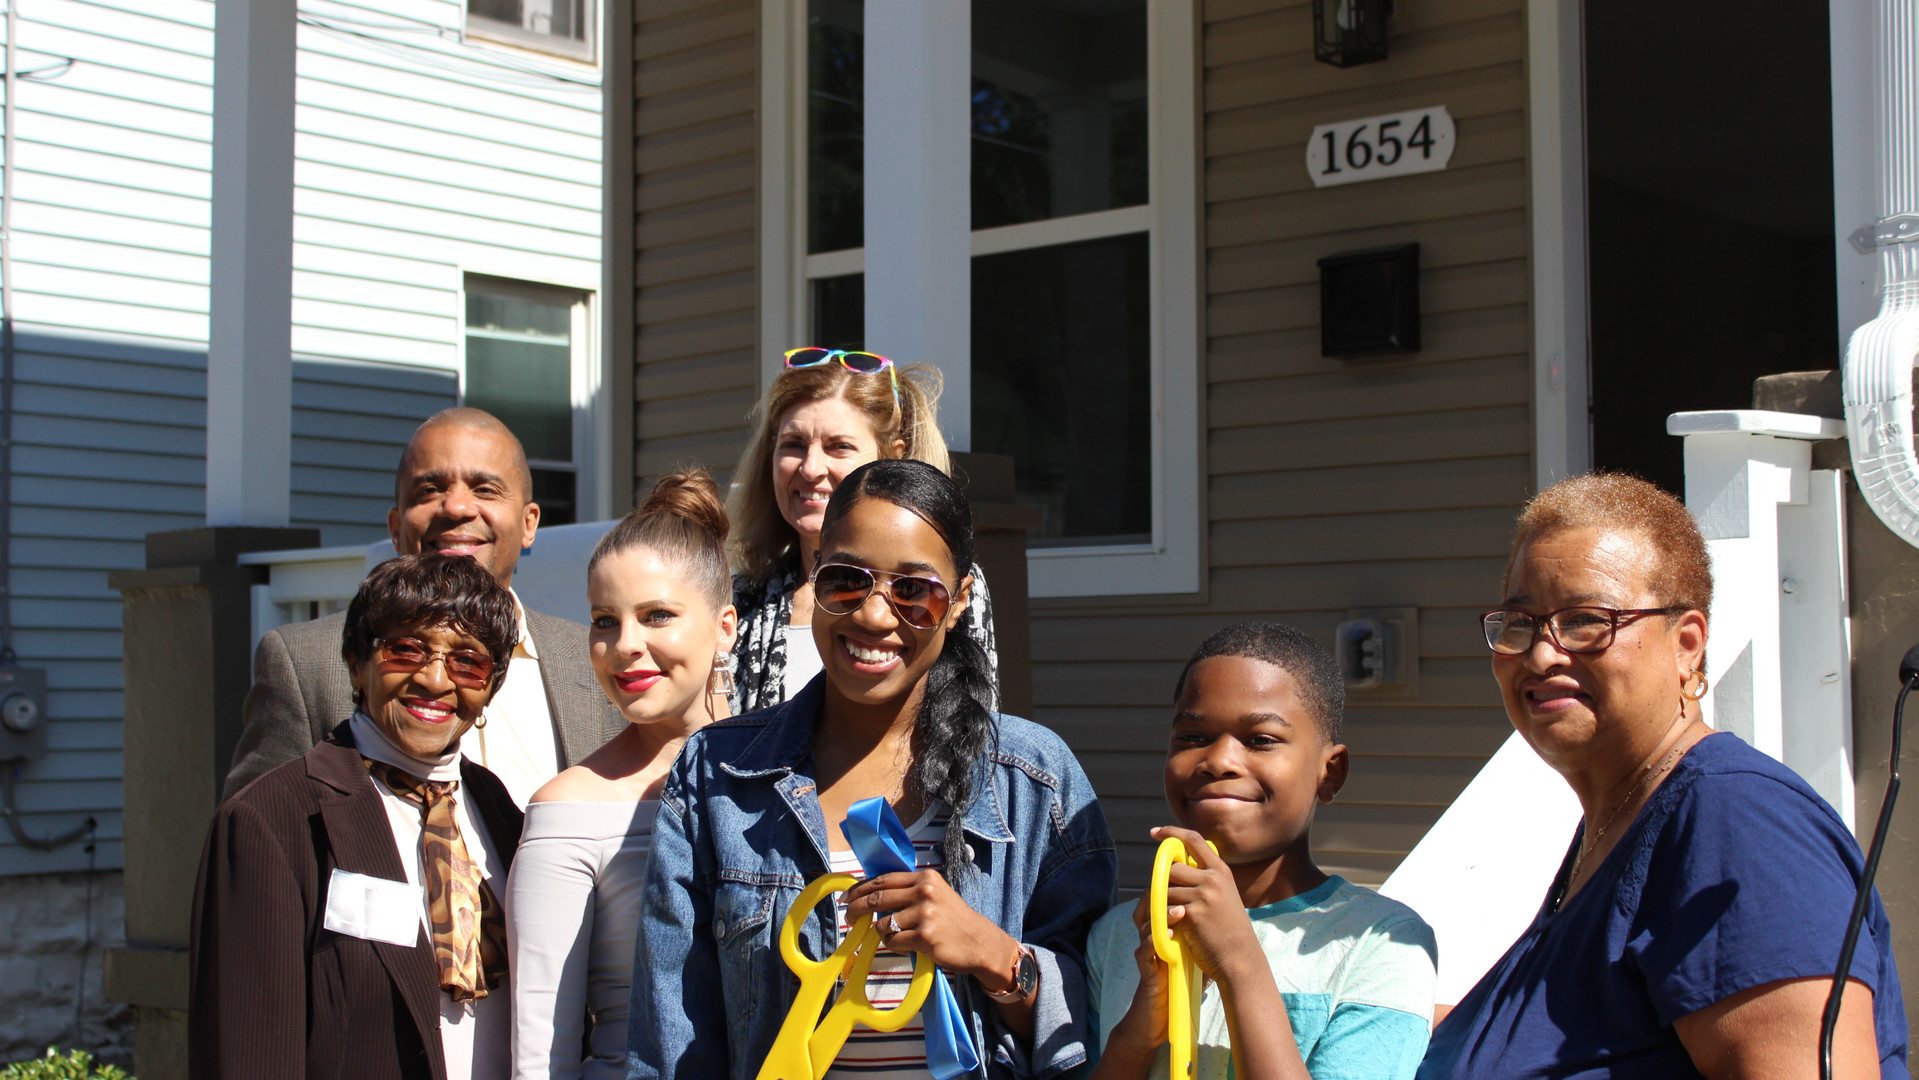 FIRST-TIME HOMEOWNERS BUY AFFORDABLE HOMES IN EVANSTON